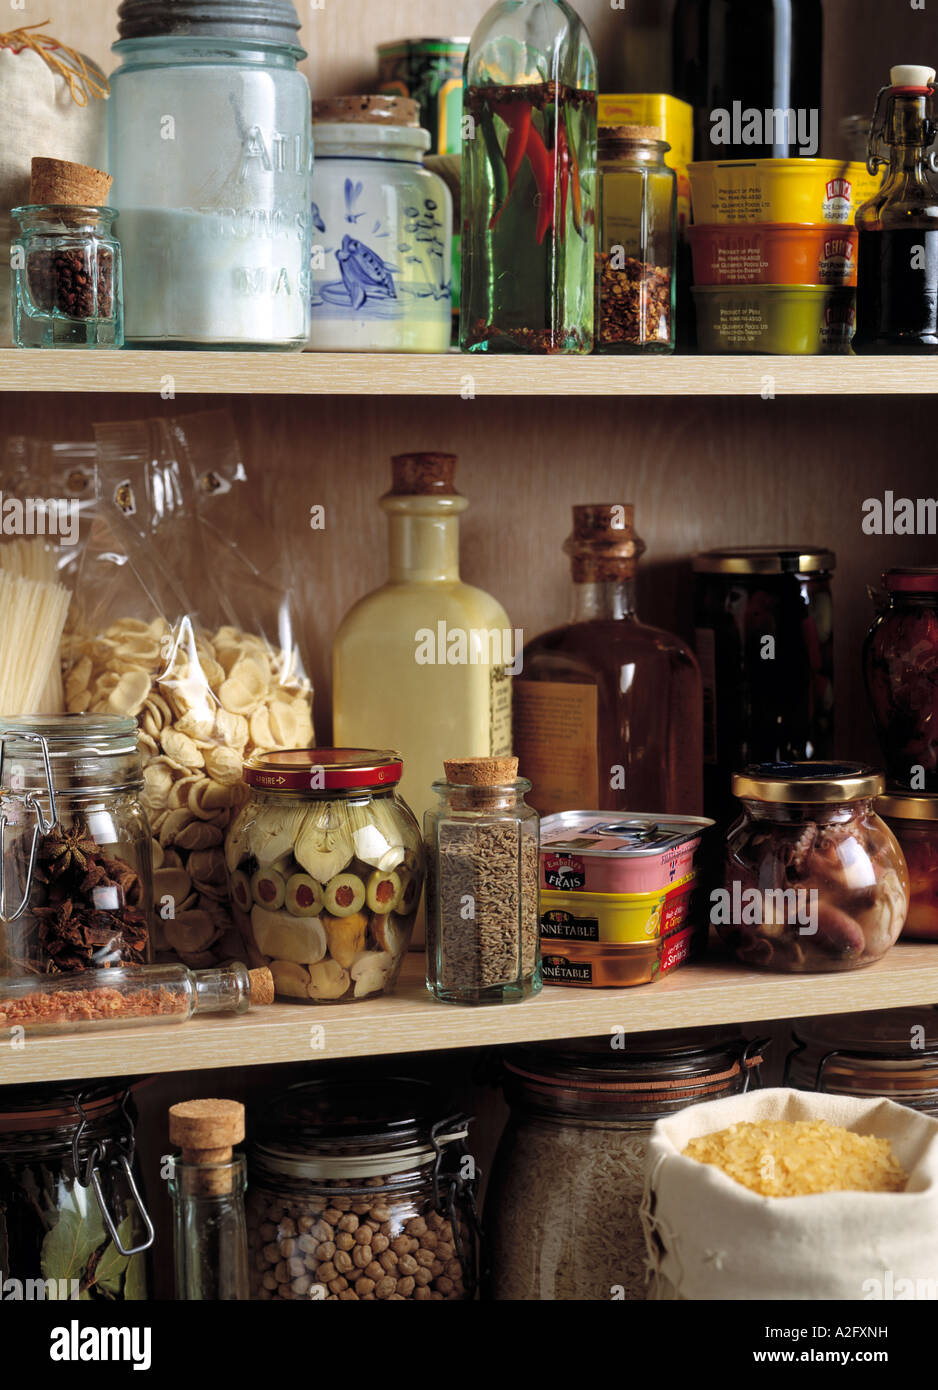 Shelves of a larder or store cupboard with dried and preserved food - Stock Image